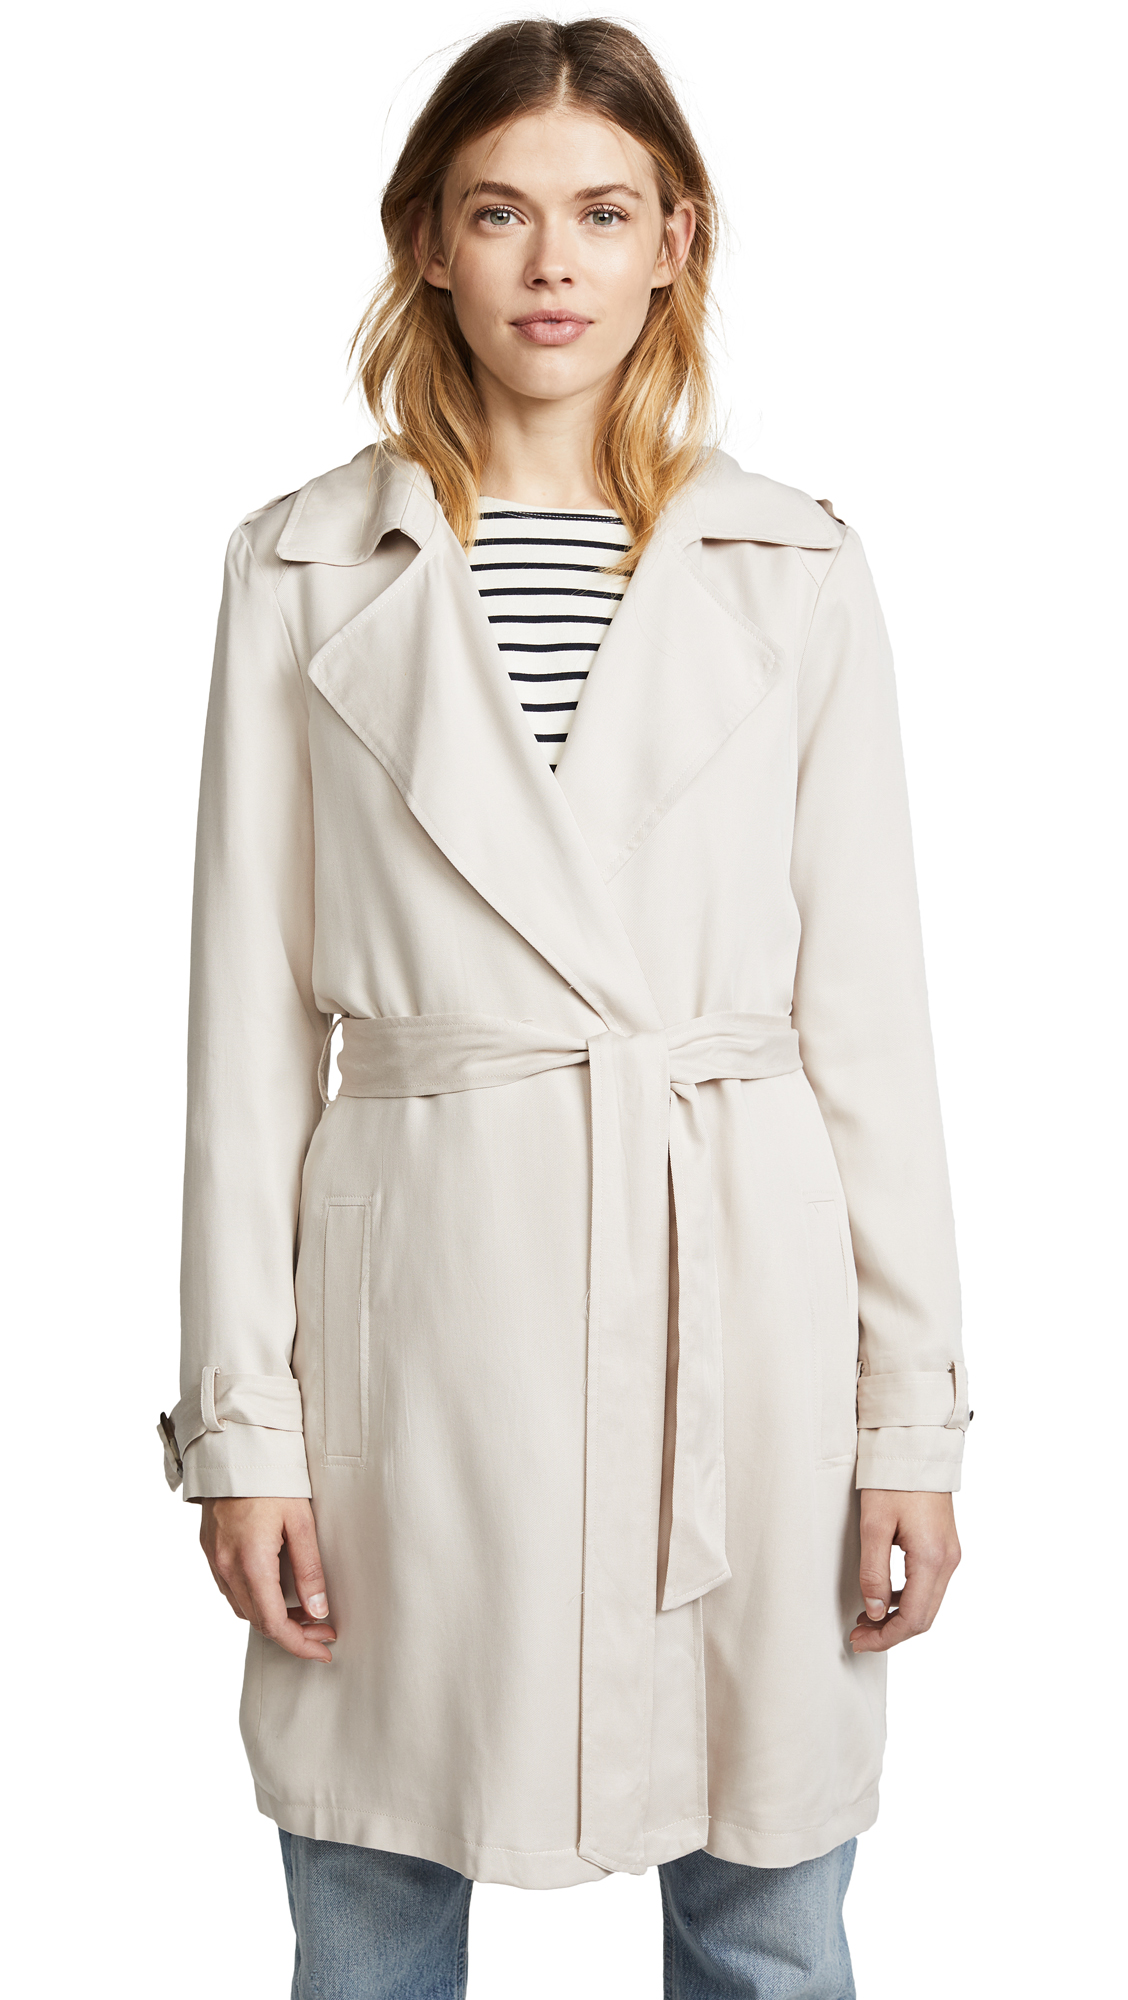 BB Dakota Rocco Trench Coat - Bone